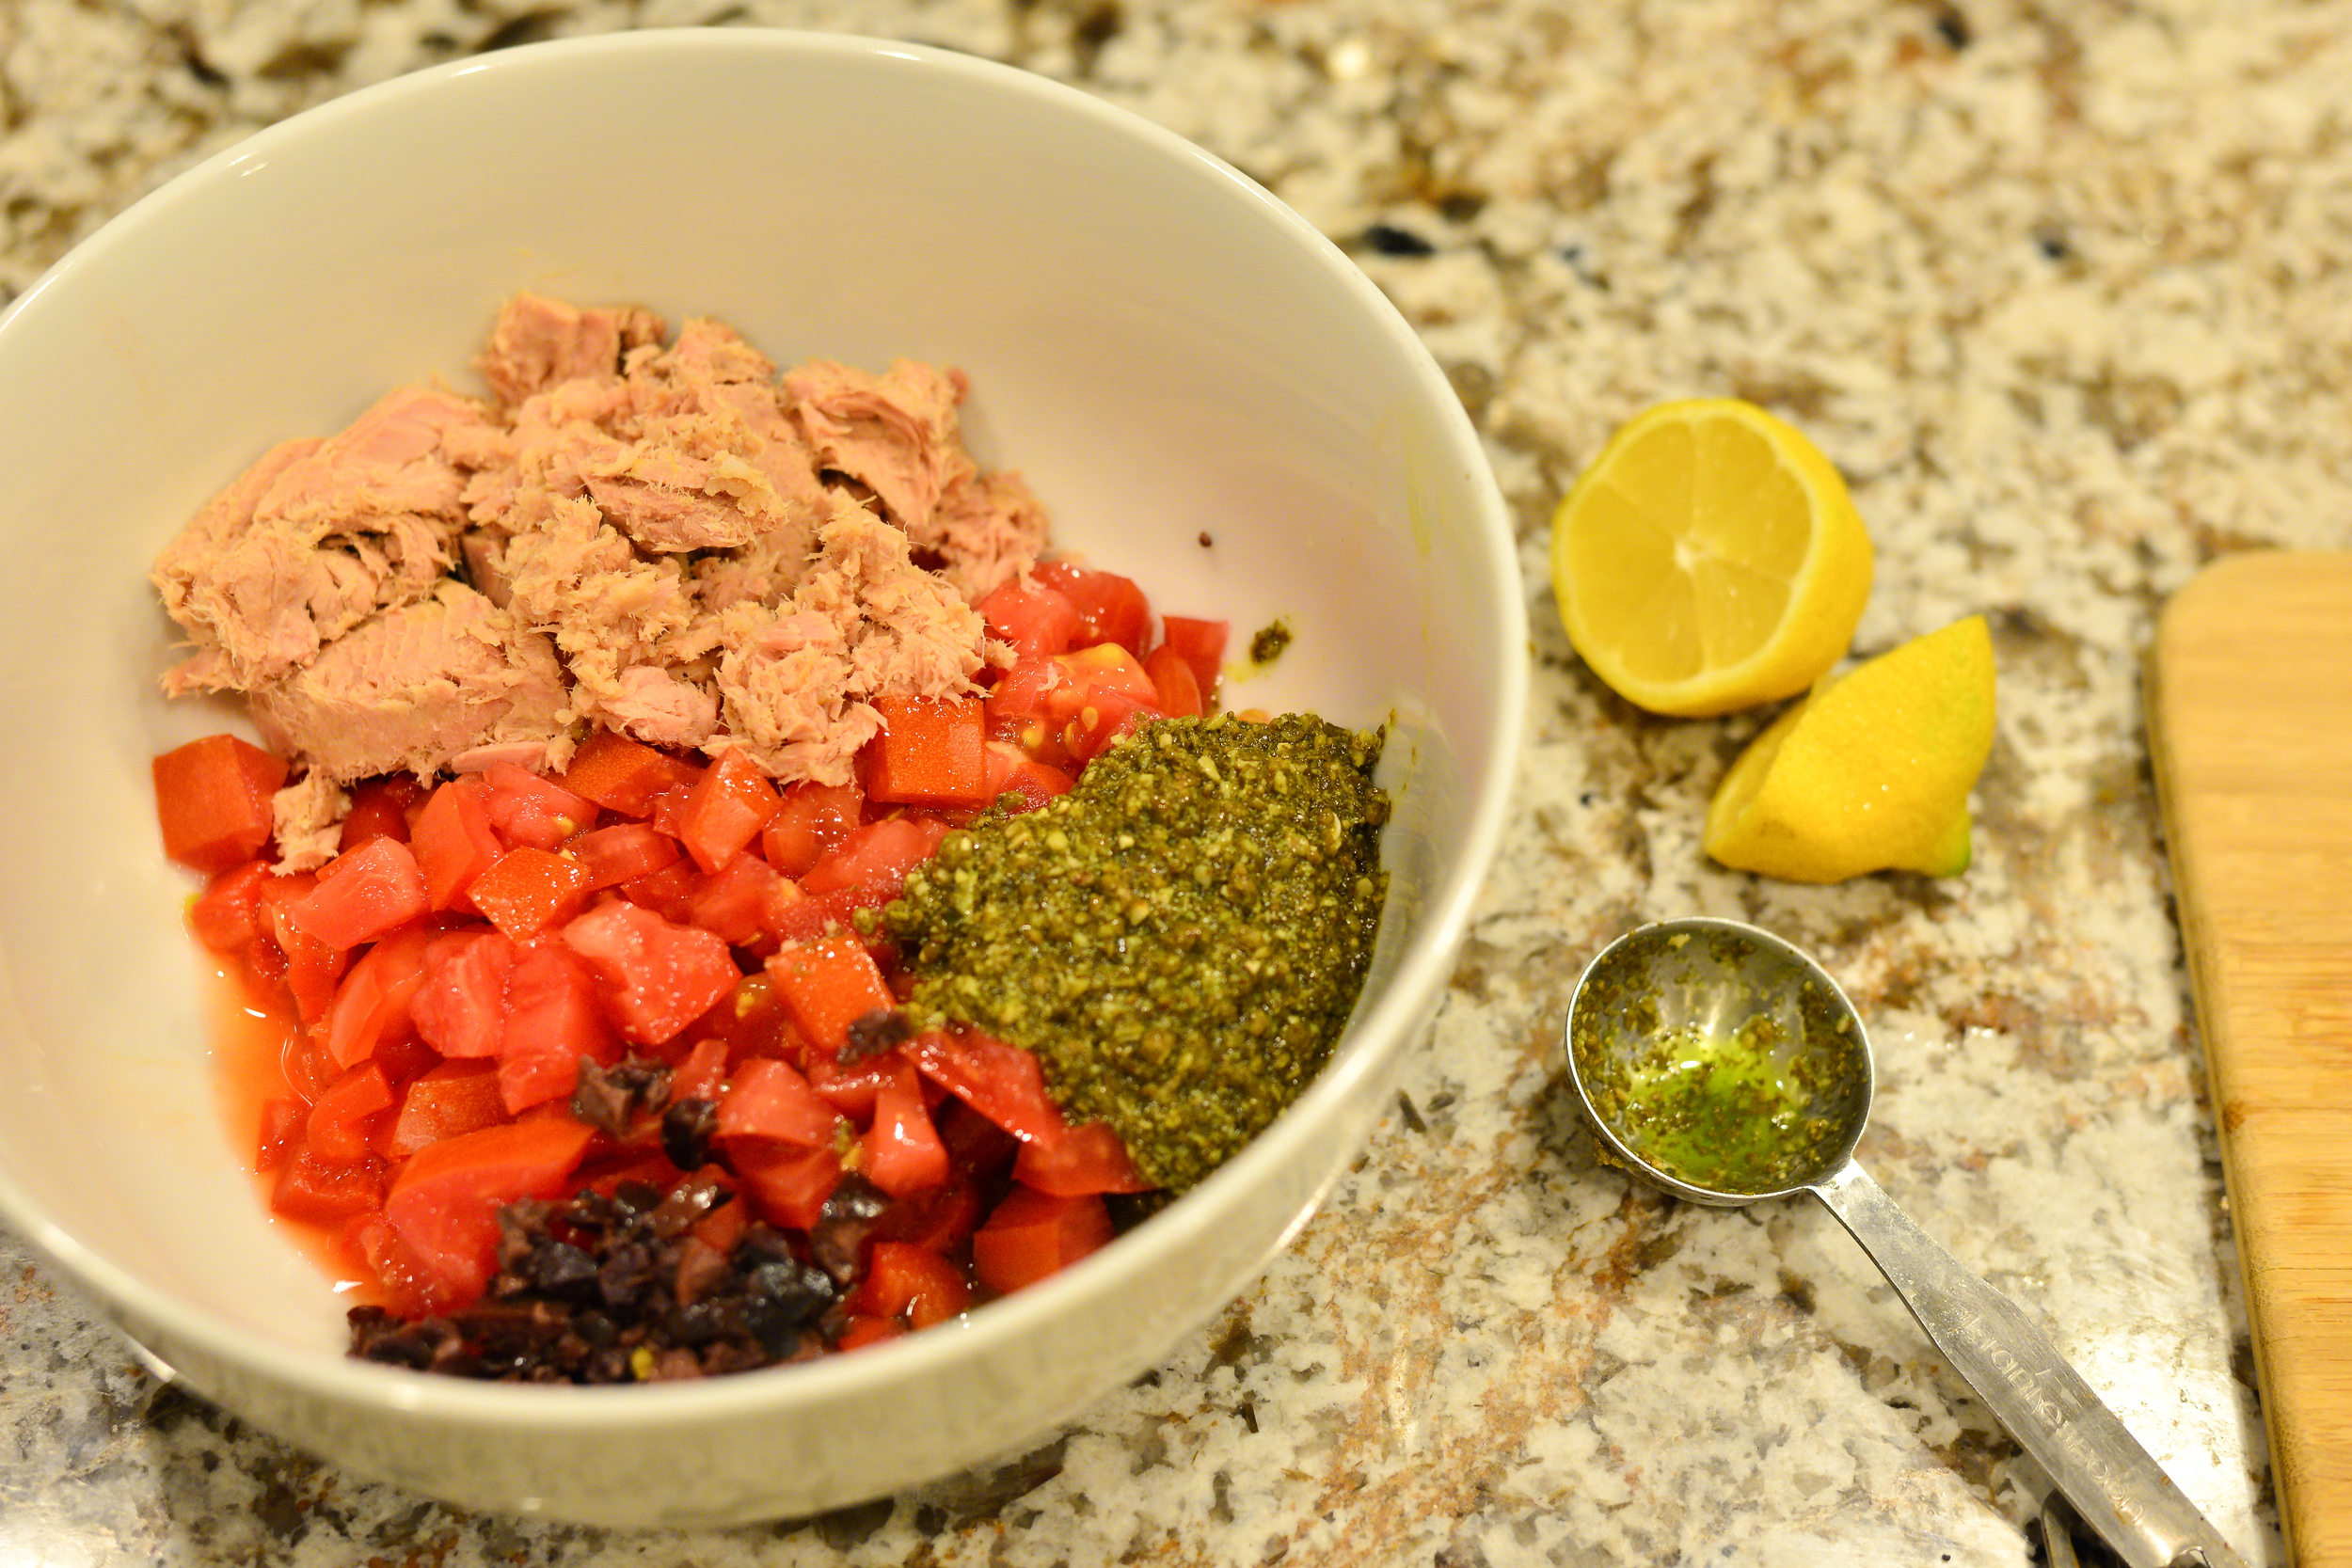 My tuna pasta salad deconstructed. All of this color leads to so much flavor! The combo ofbasil pesto and lemon juice make the flavors pop in this salad.